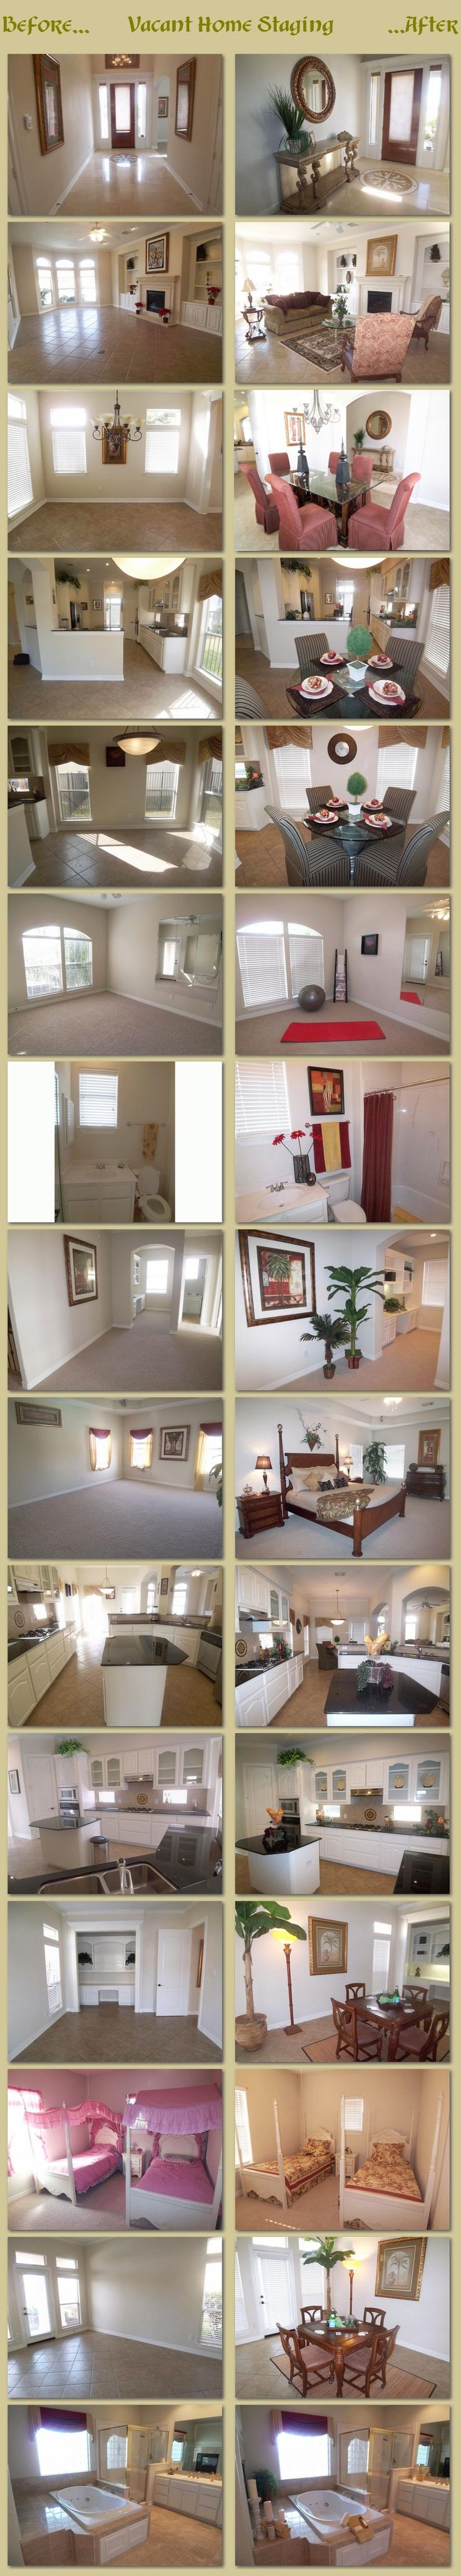 Before and After Photos of a Waterfront Vacant Home. What a huge difference simple home staging can do you the resale value of your home.